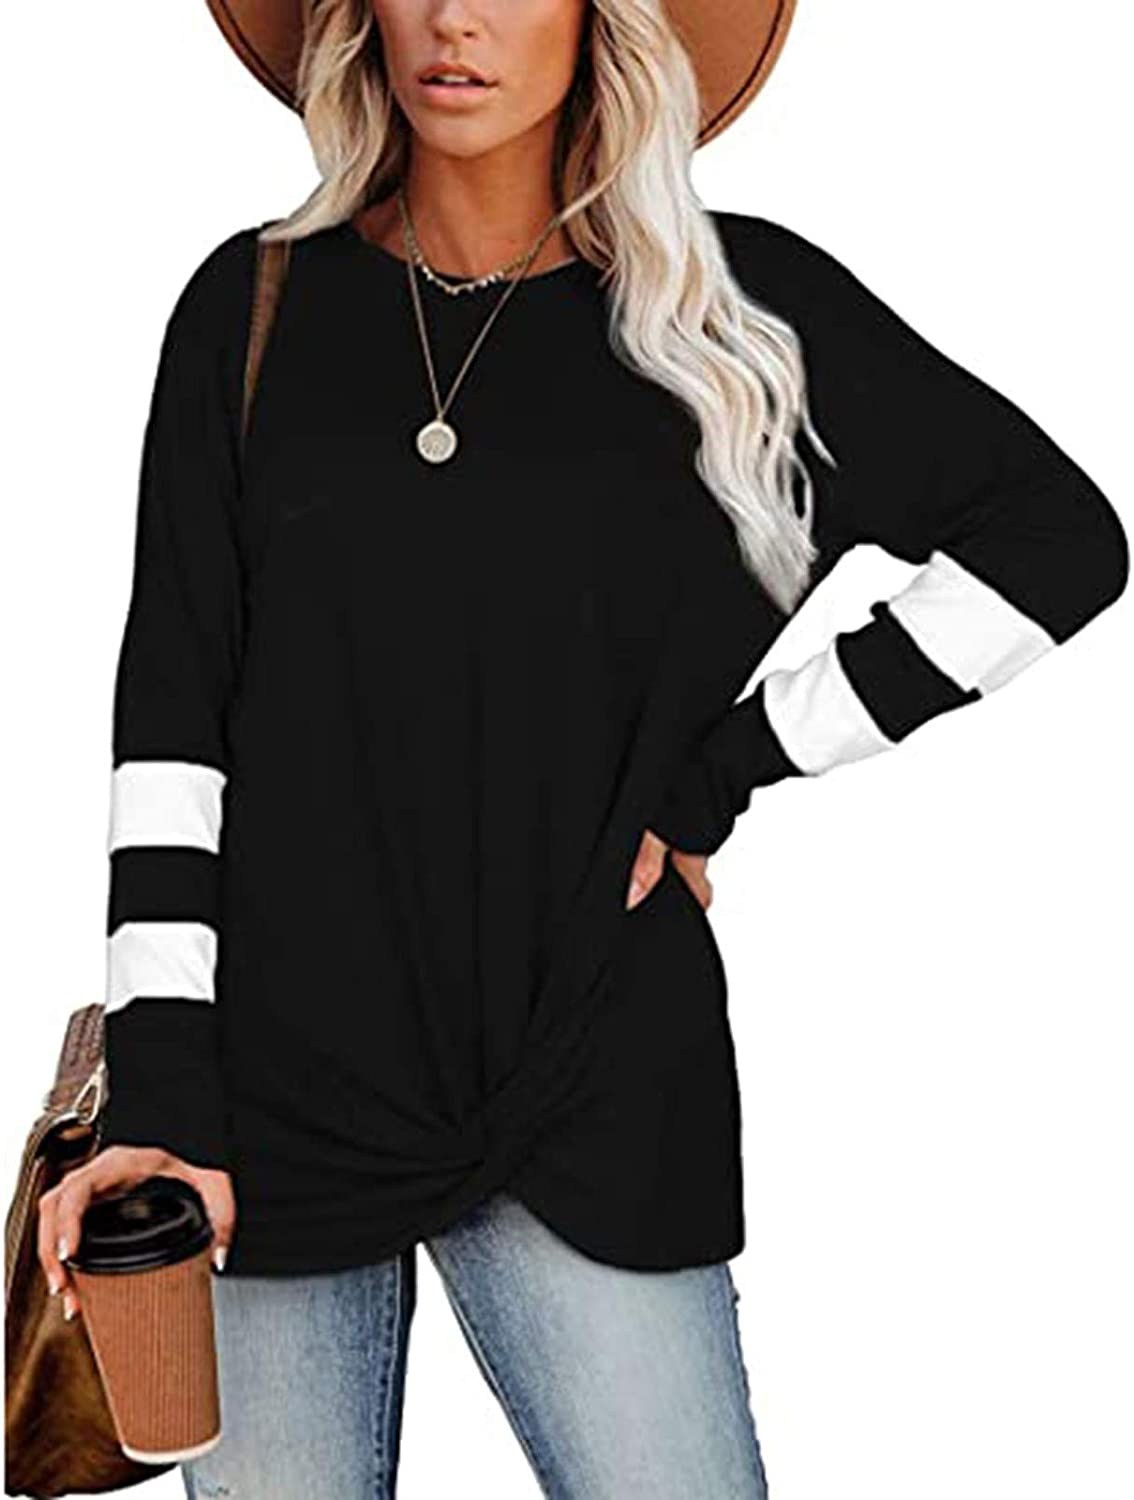 UOCUFY Women Long Sleeve Tops, Womens Tunics Shirts Tops Long Sleeve Soft Casual Loose Crewneck Pullover Tops